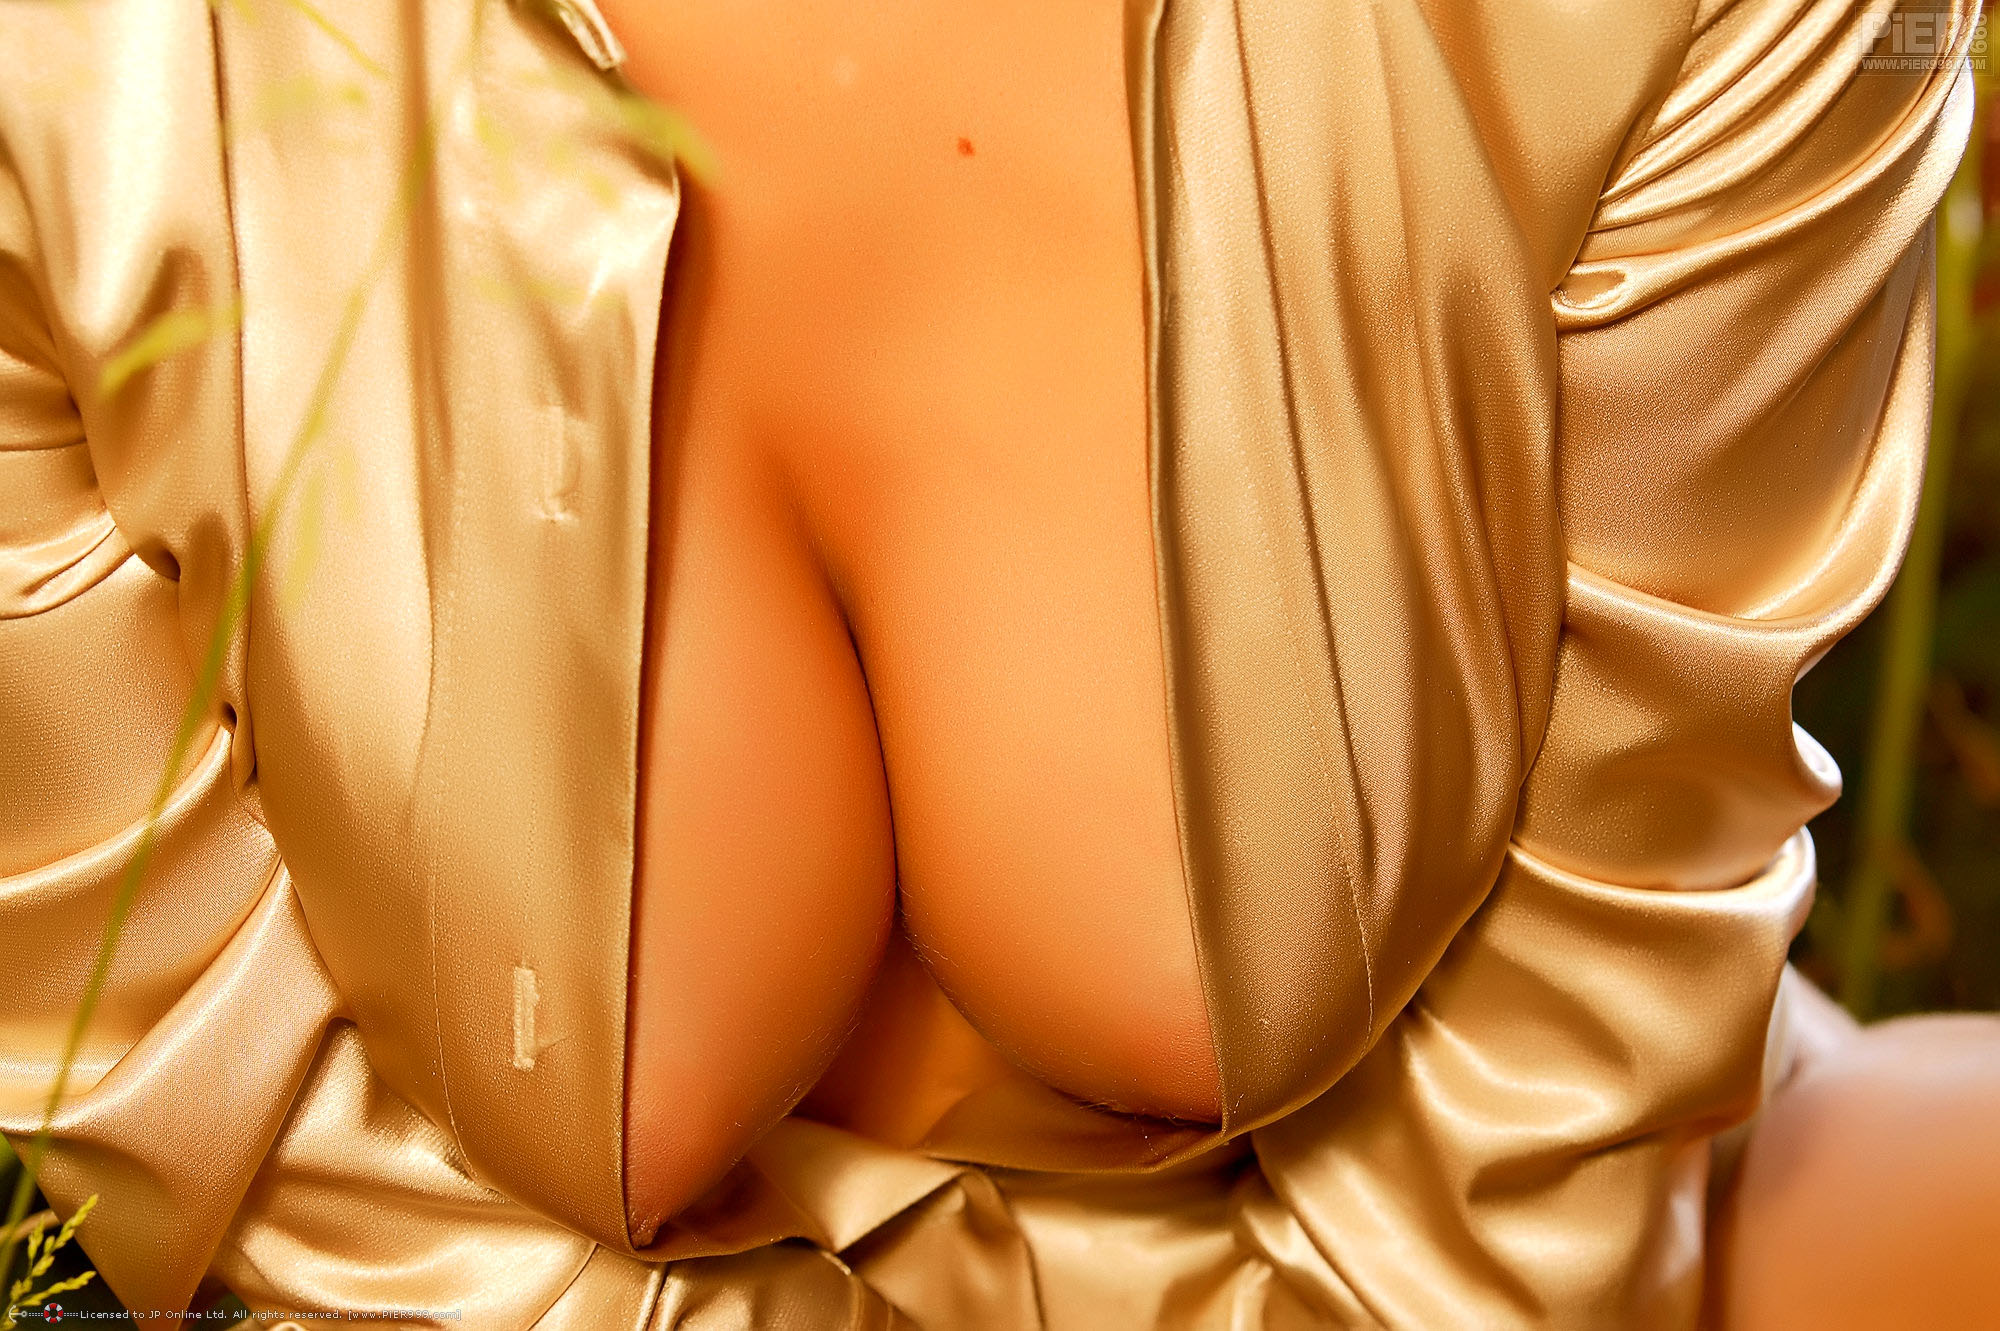 nipples boobs cleavage gold